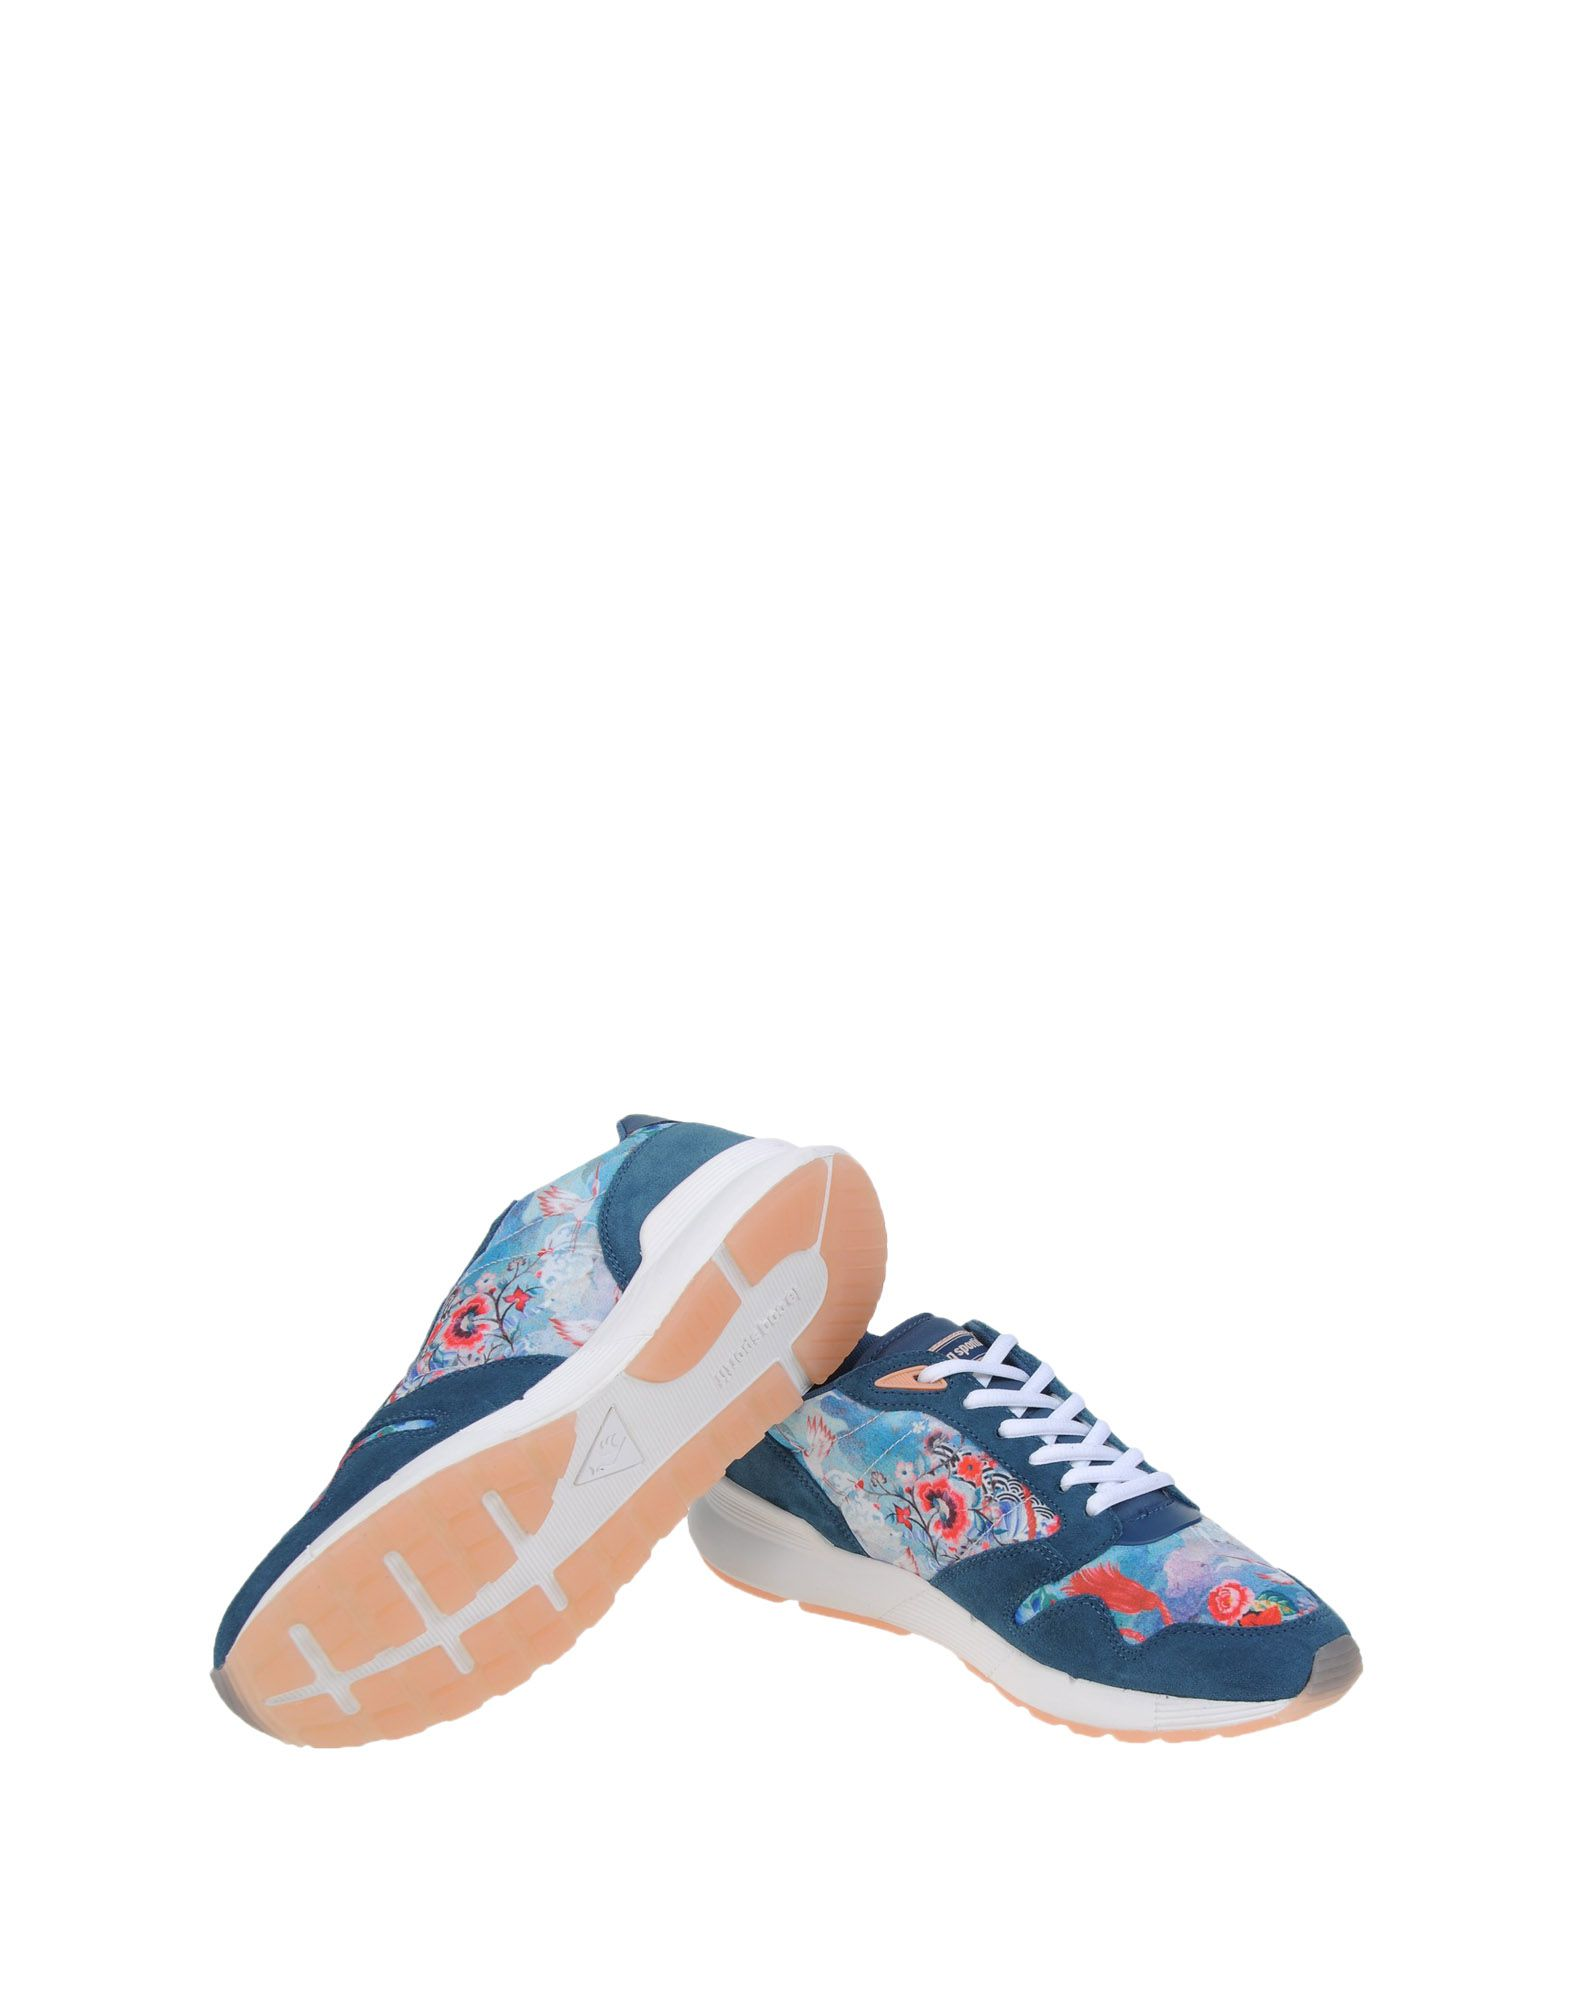 Sneakers Le Coq Sportif Omega X W Patchwork - Femme - Sneakers Le Coq Sportif sur